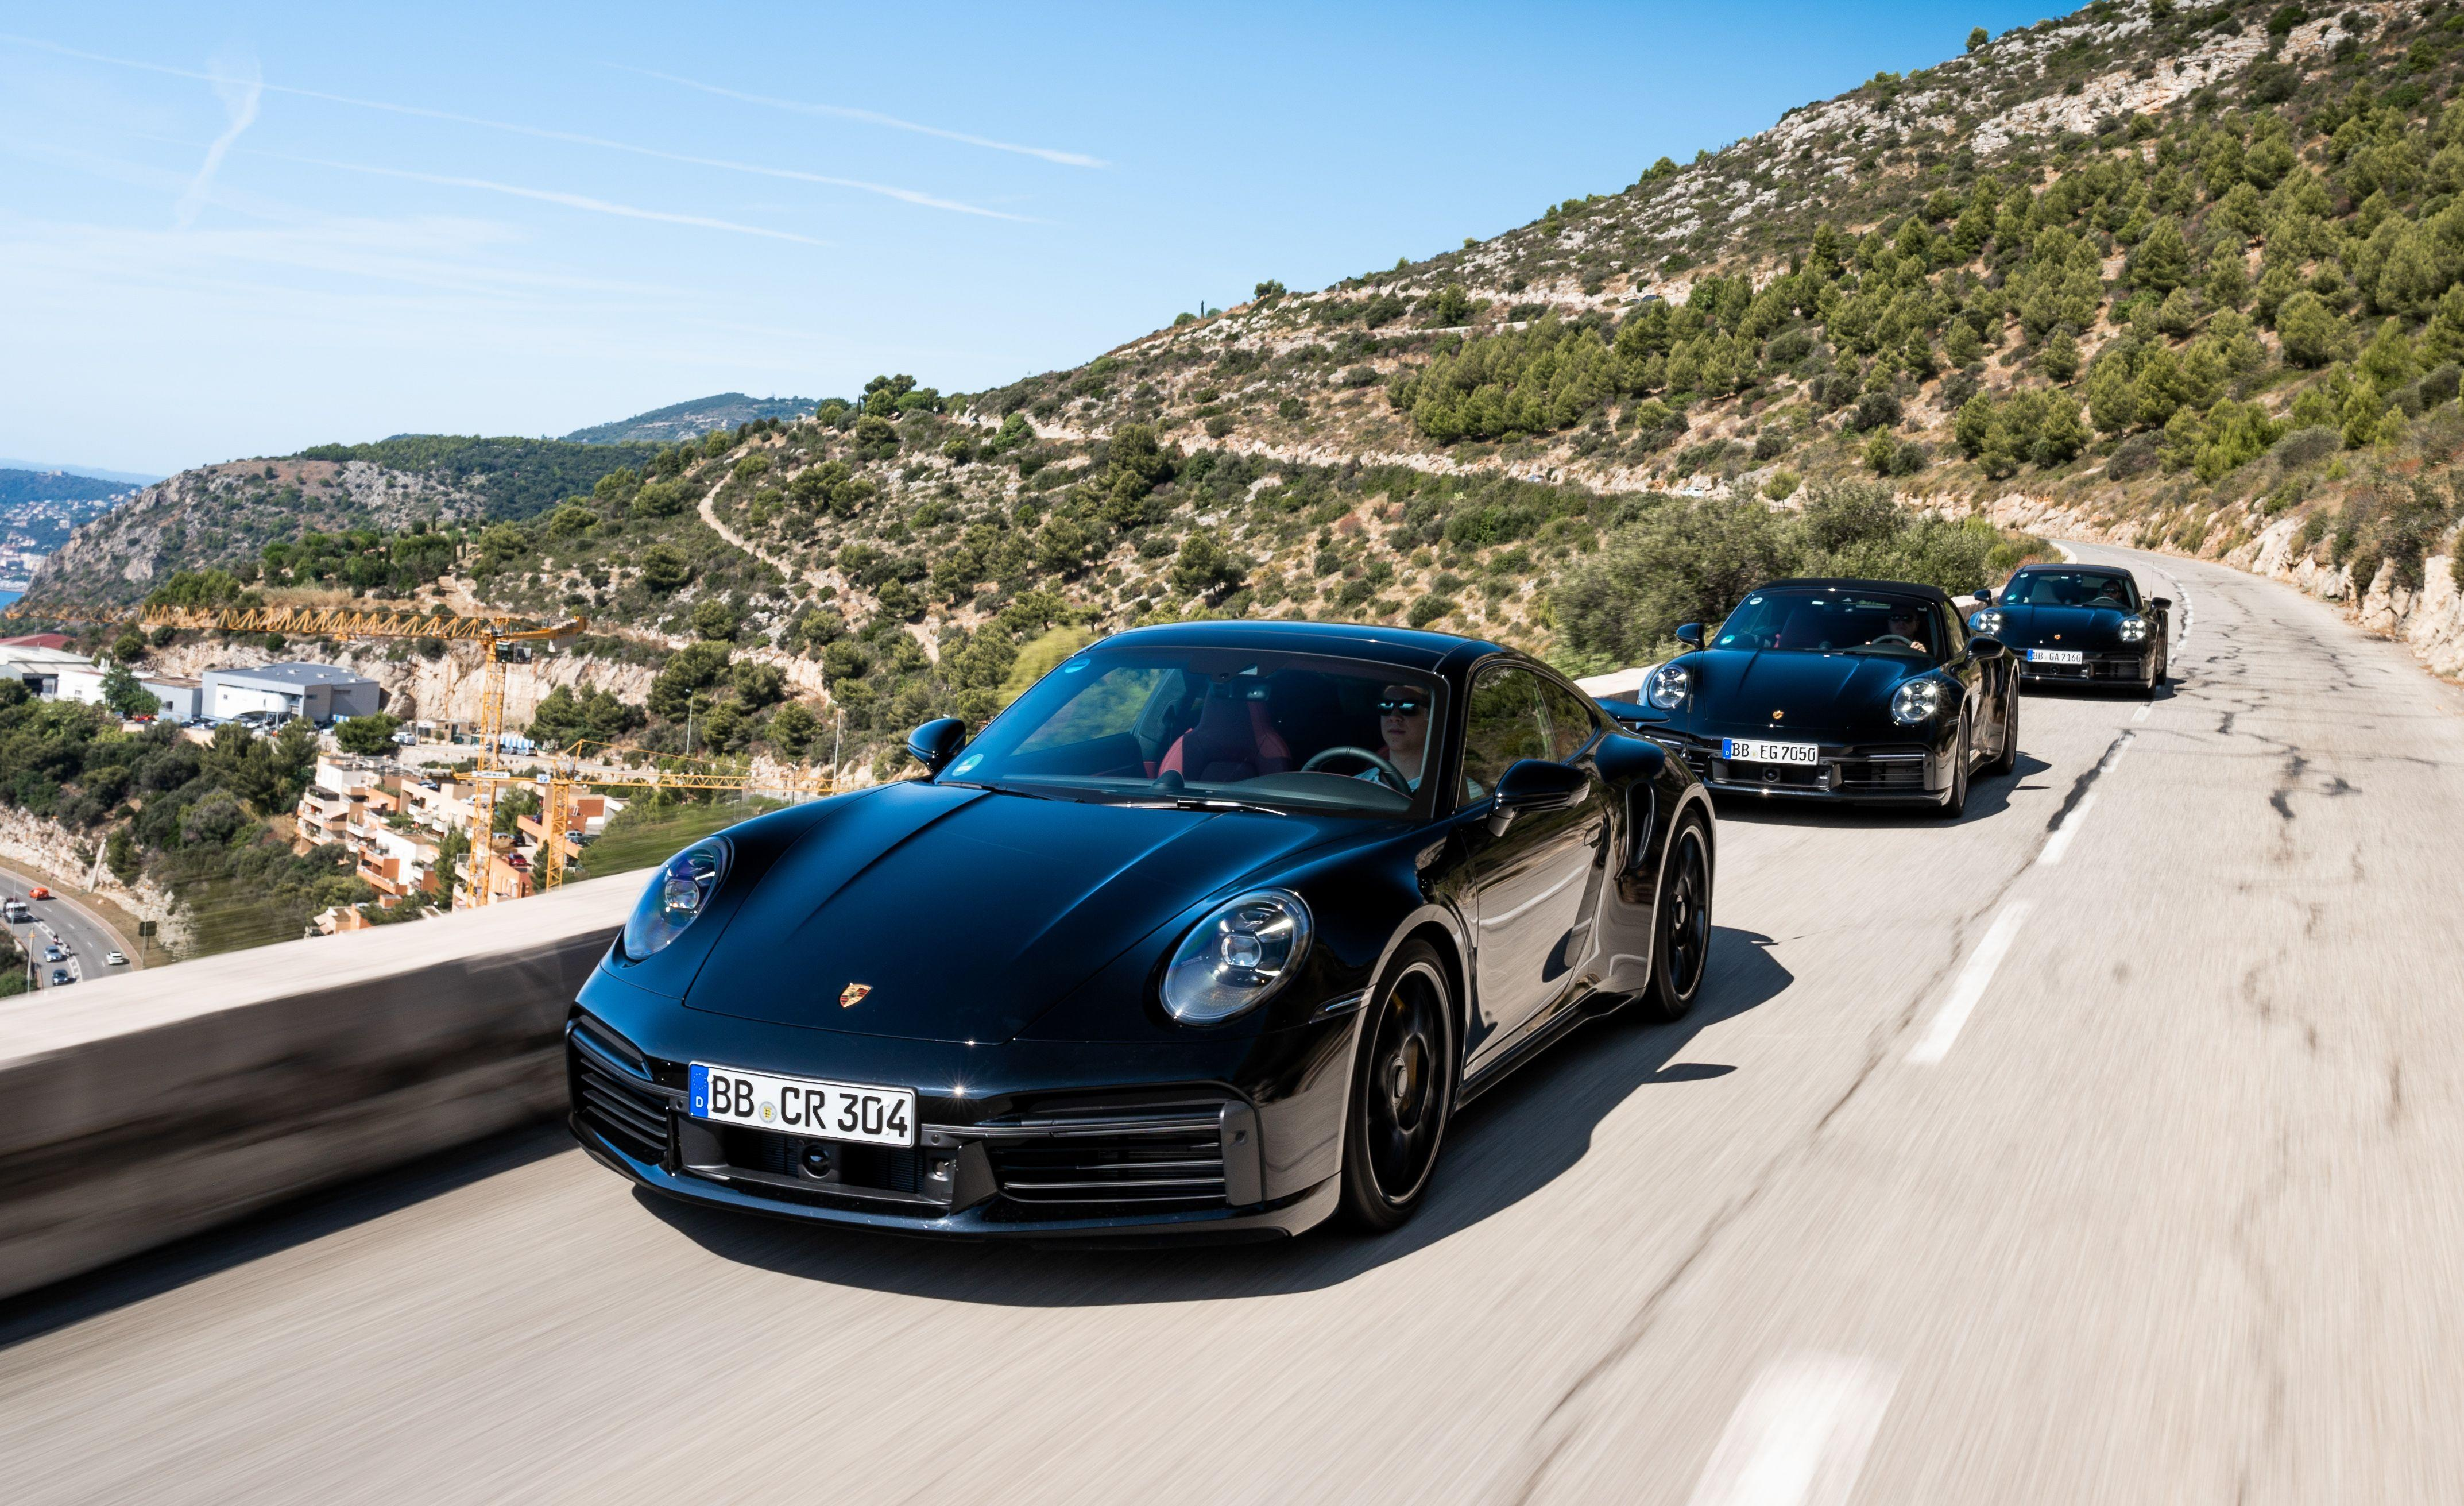 <p>Although the 2020 Porsche 911 Turbo S won't be officially announced until next spring, we recently rode in it in the mountains surrounding Nice, France, and Monaco. Bigger and heavier than before, it's also substantially more powerful and quicker. Read the full story here. </p>